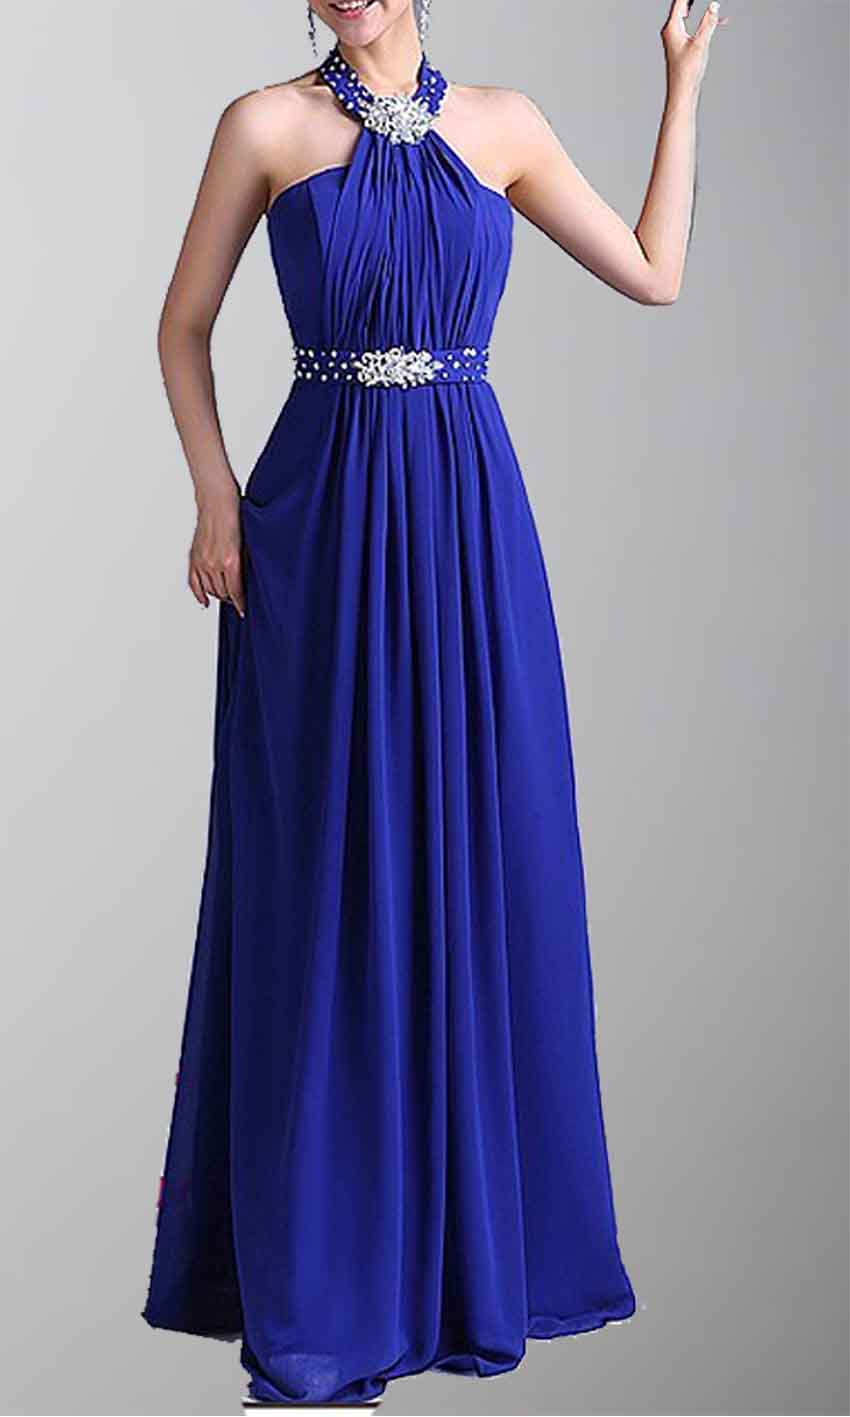 Sequined Scoop Neck Full Length Prom Gowns KSP035 [KSP035] - £95.00 : Cheap Prom Dresses Uk, Bridesmaid Dresses, 2014 Prom & Evening Dresses, Look for cheap elegant prom dresses 2014, cocktail gowns, or dresses for special occasions? kissprom.co.uk offers various bridesmaid dresses, evening dress, free shipping to UK etc.